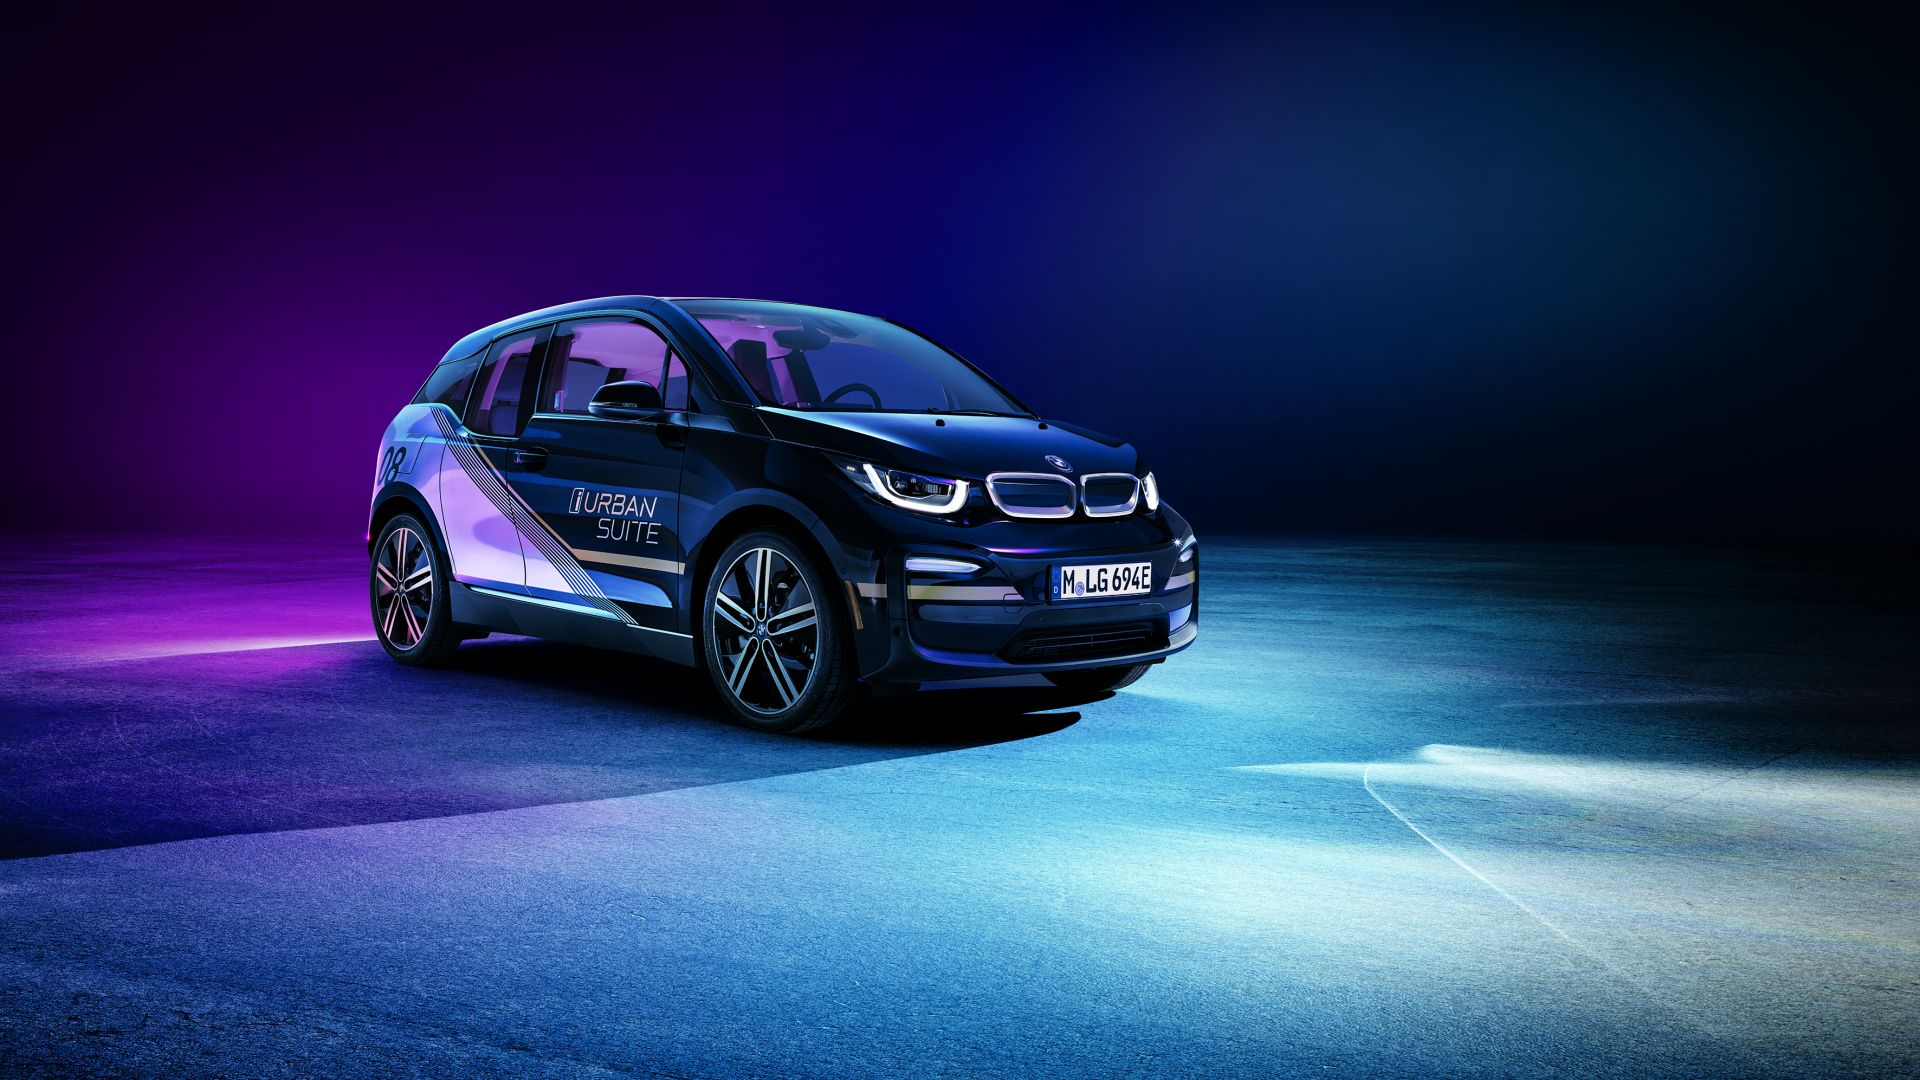 BMW i3 Urban Suite, CES 2020, electric car, 2020 cars, 4K, BMW i3 Urban Suite, CES 2020, electric car, 2020 cars, 4K (horizontal)